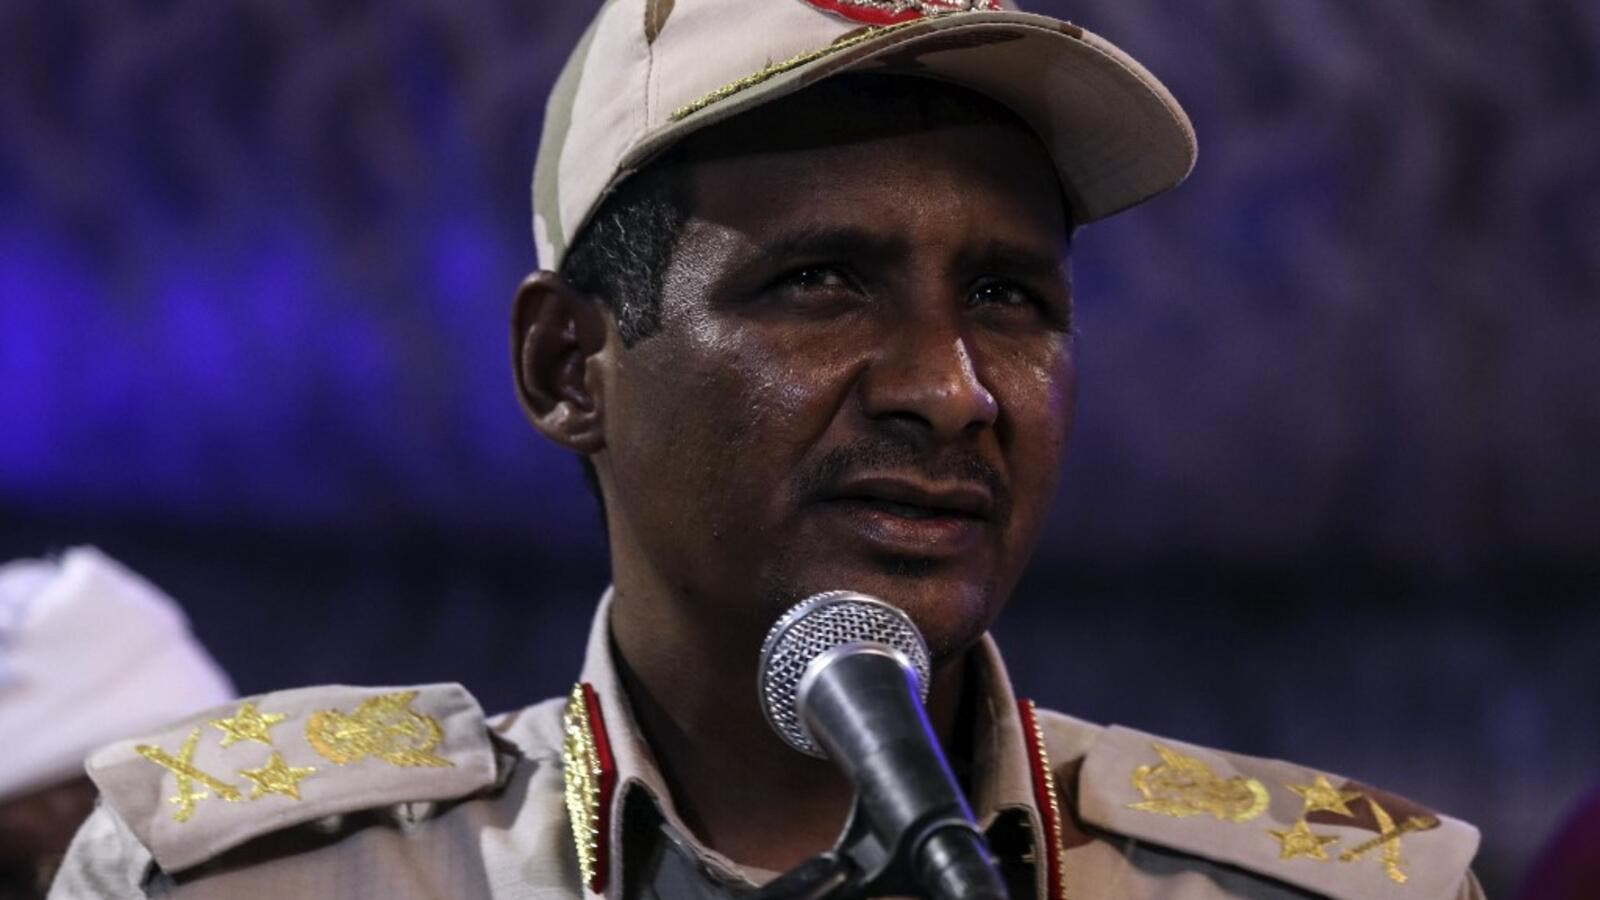 Sudan Military Leader Cements Relations With The Saudis